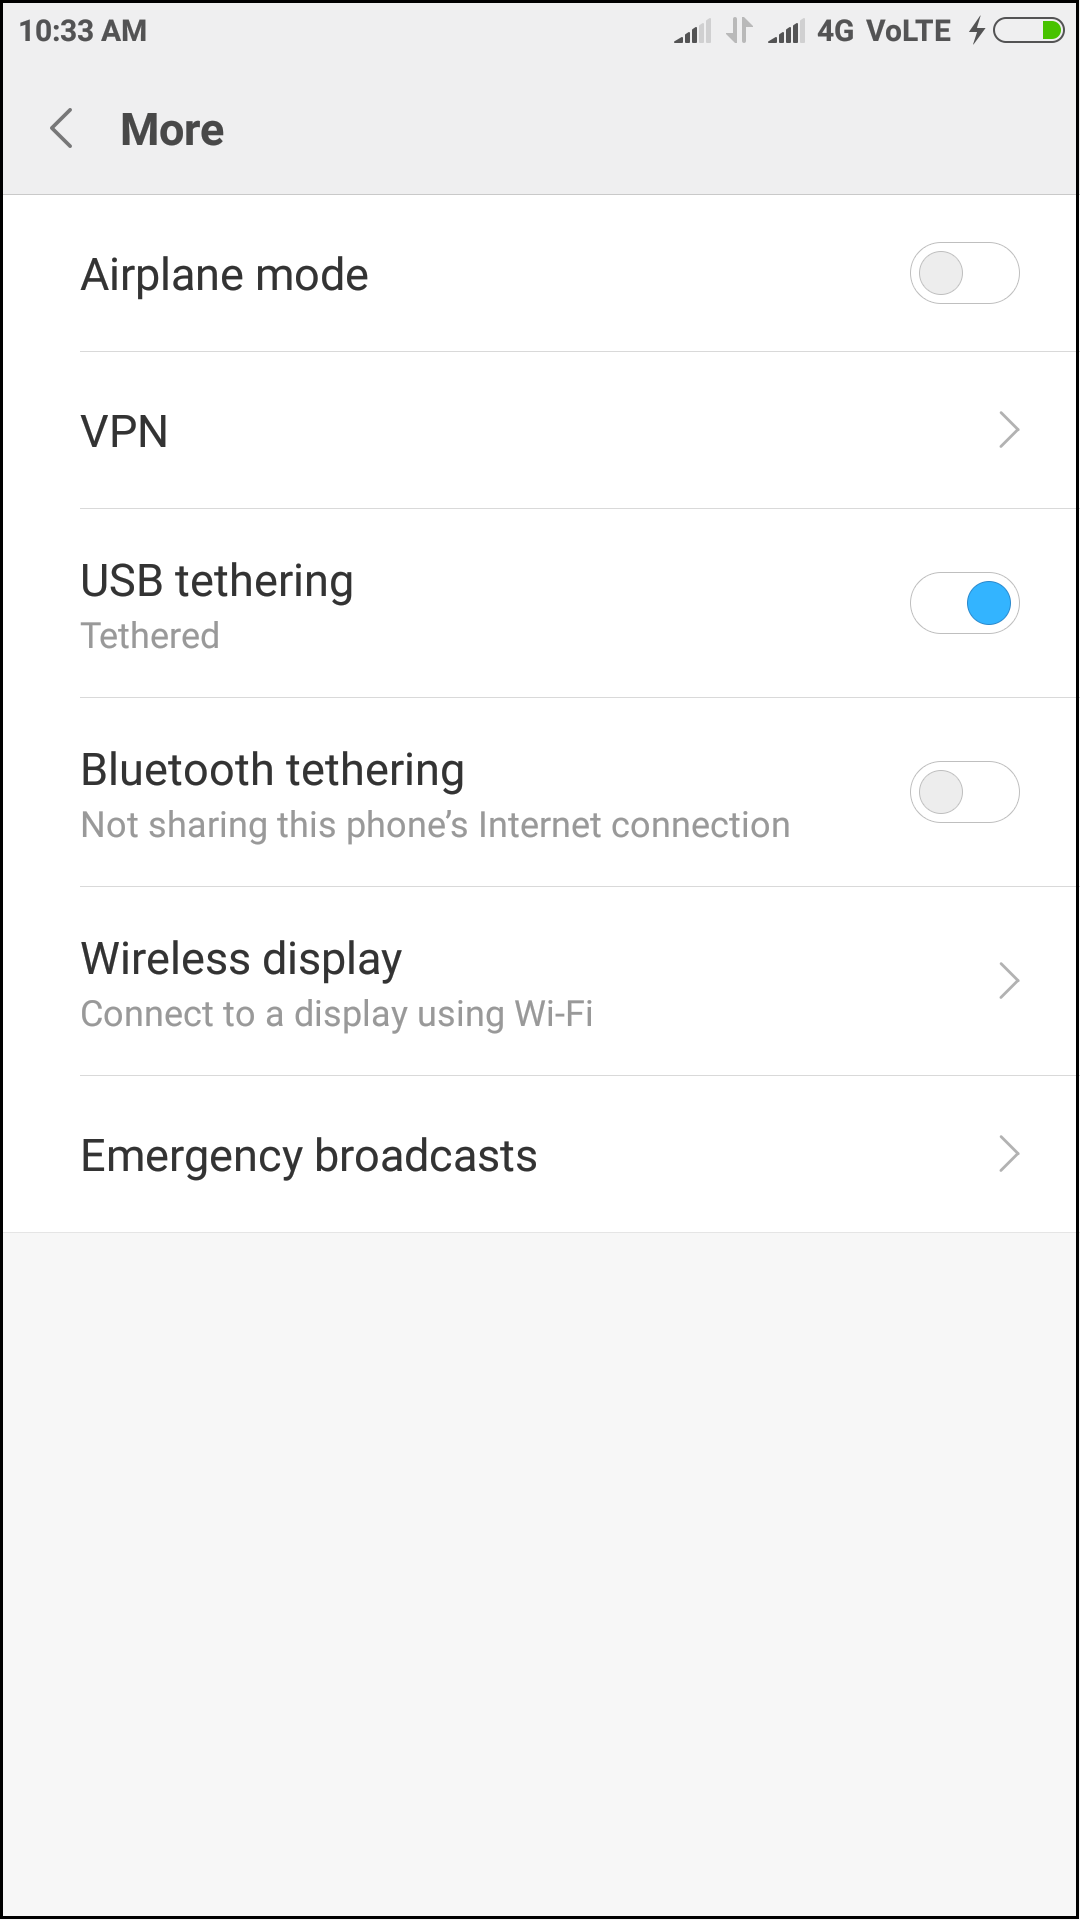 About wi-fi connection - about a mobile phone